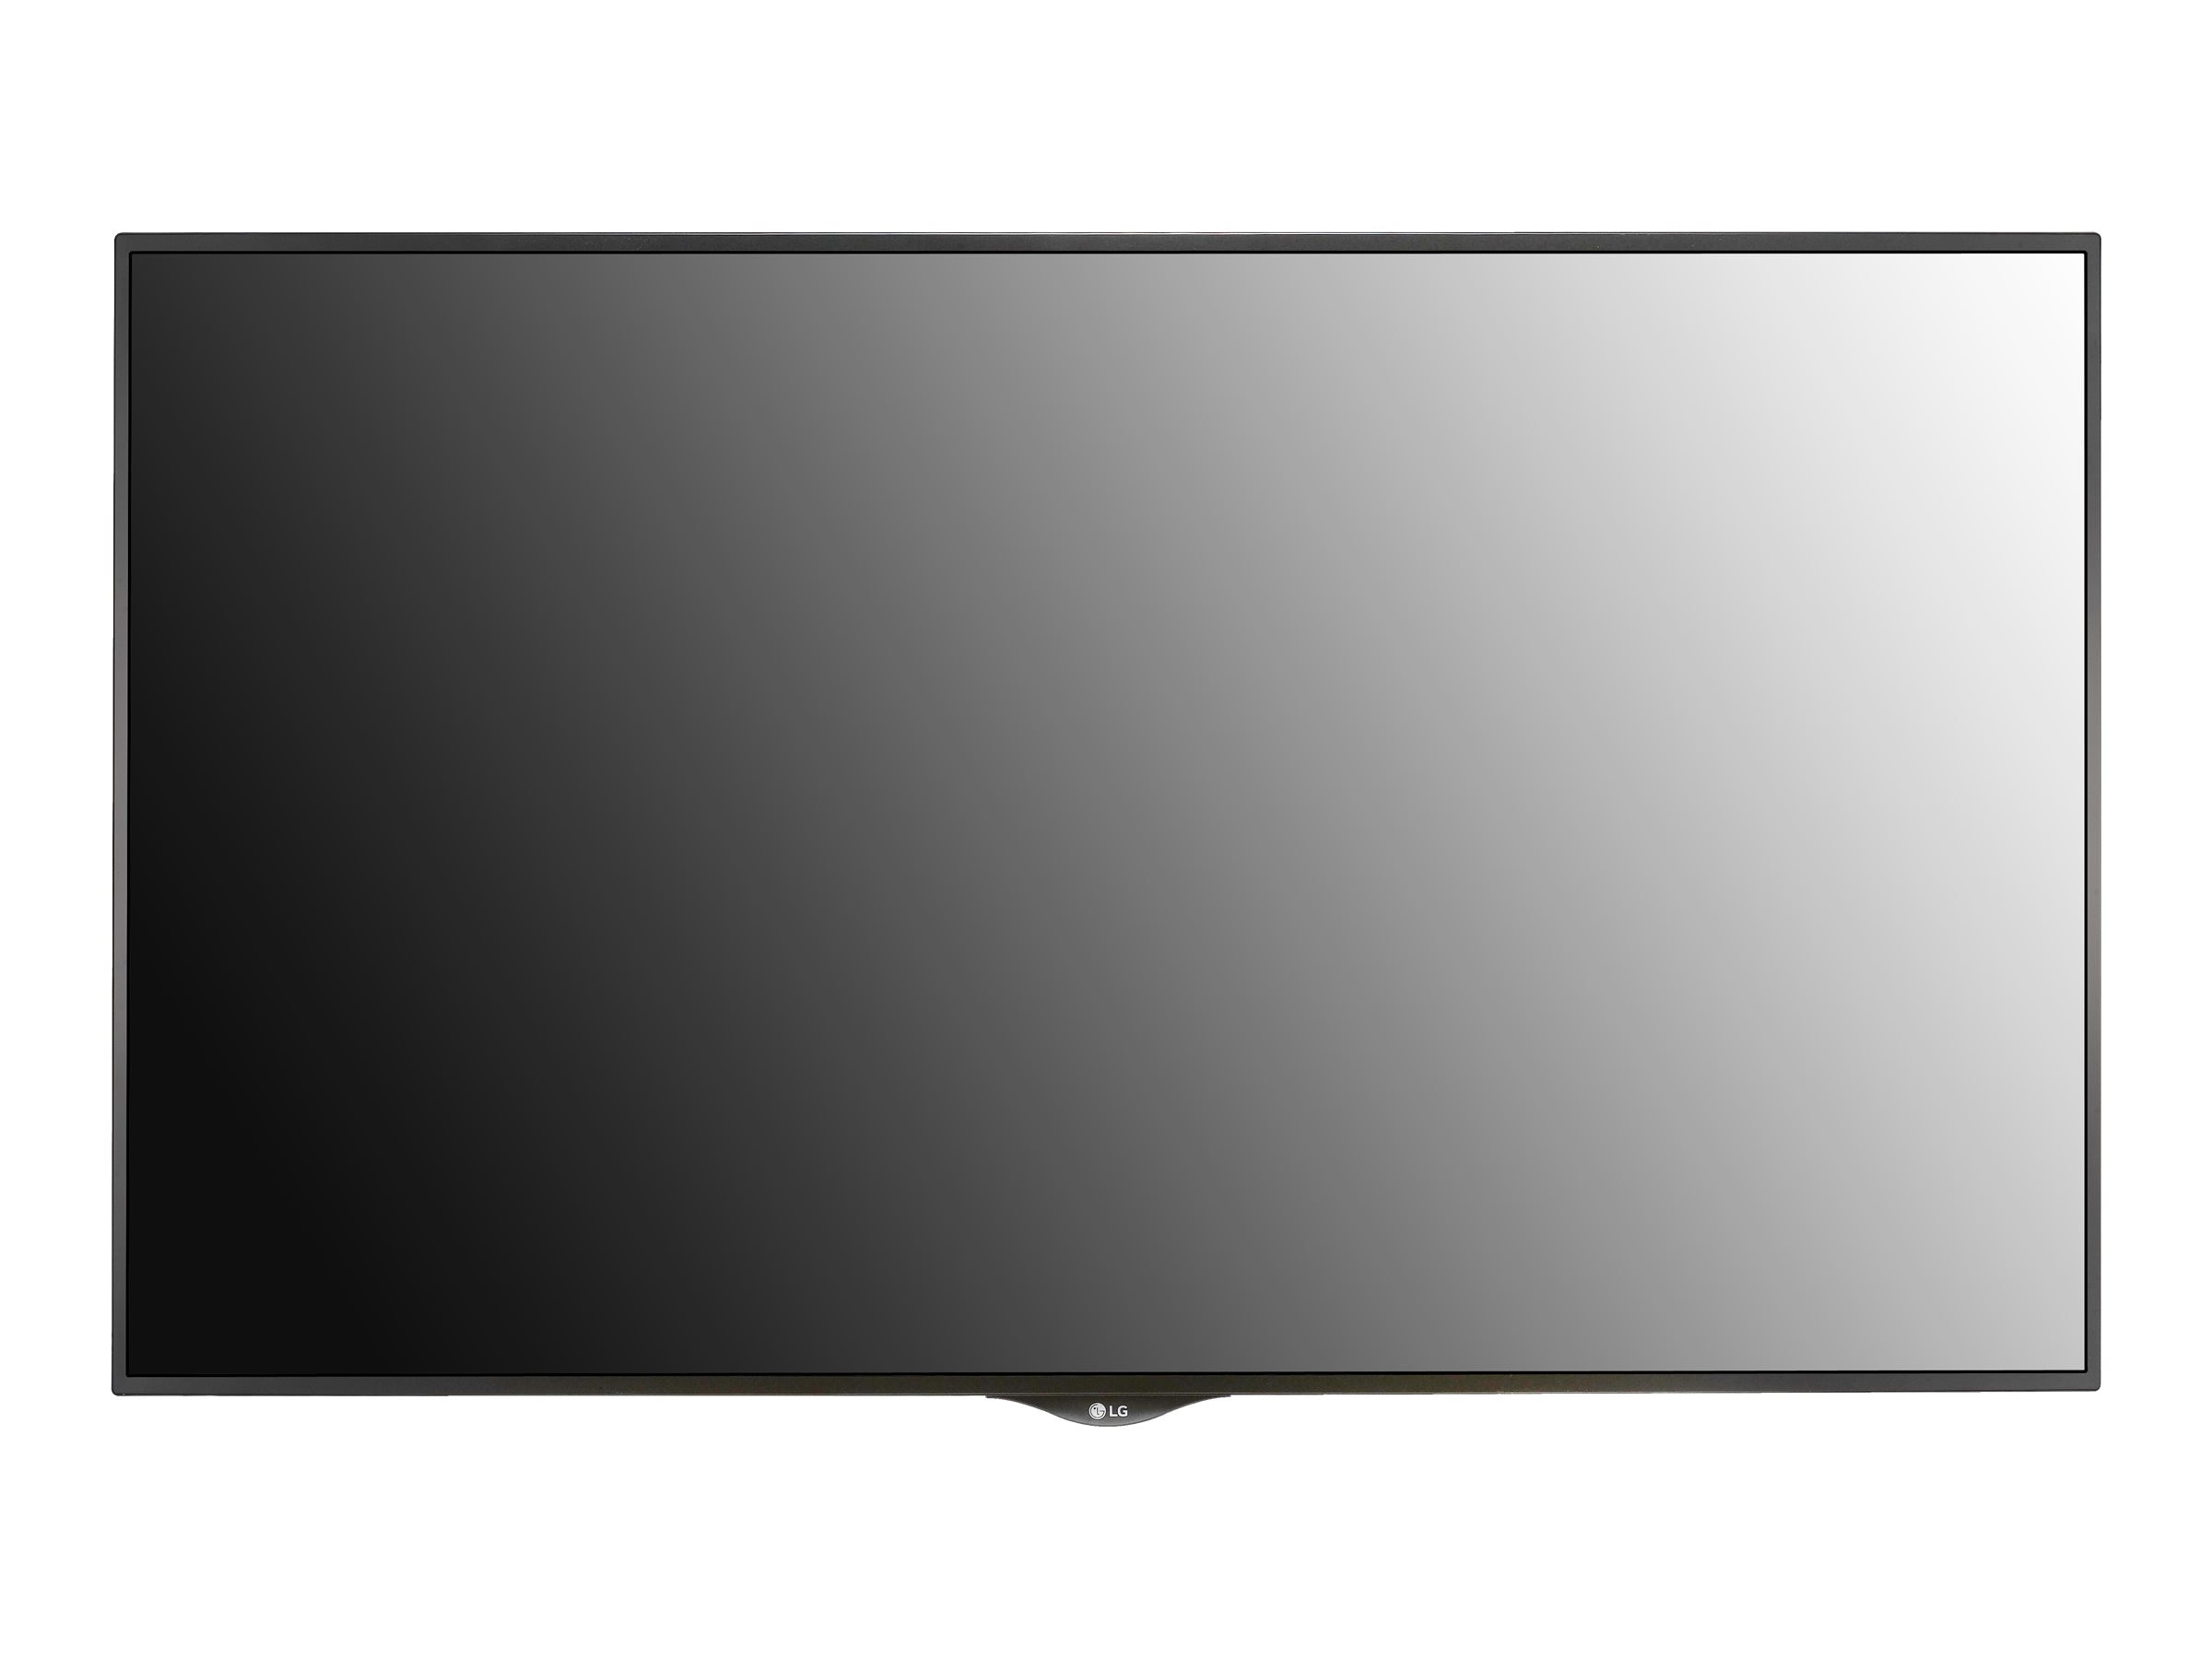 LG 49 XS2B-B Full HD LED-LCD Hospitality TV, Black, 49XS2B-B